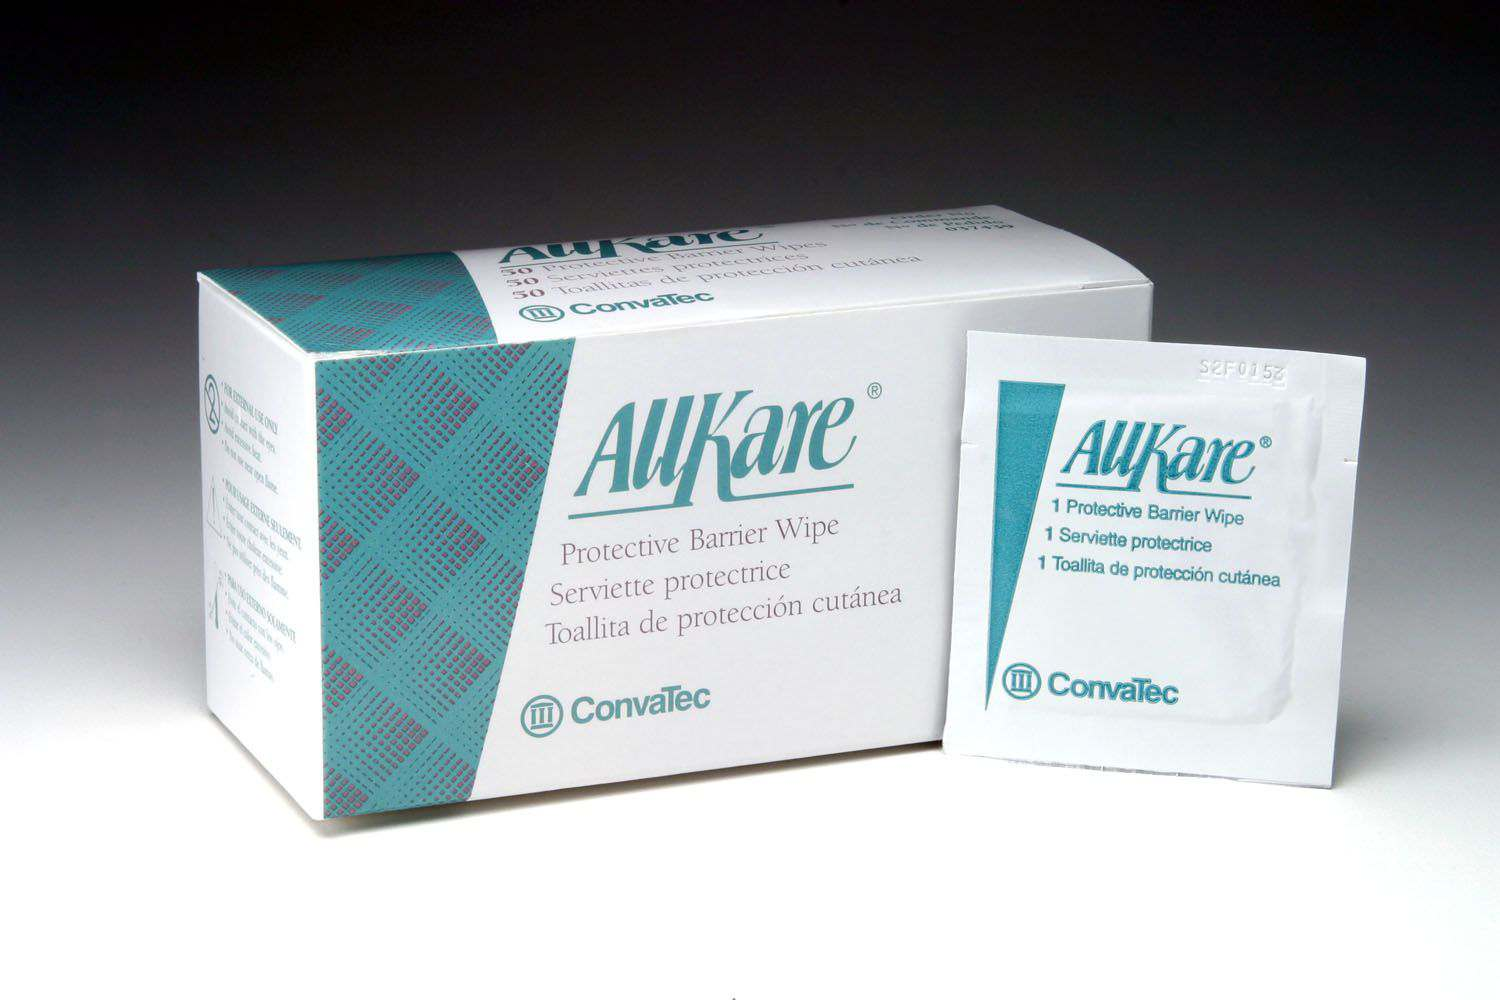 Convatec AllKare Protective Barrier Wipe - All Care, Each - Model 37444